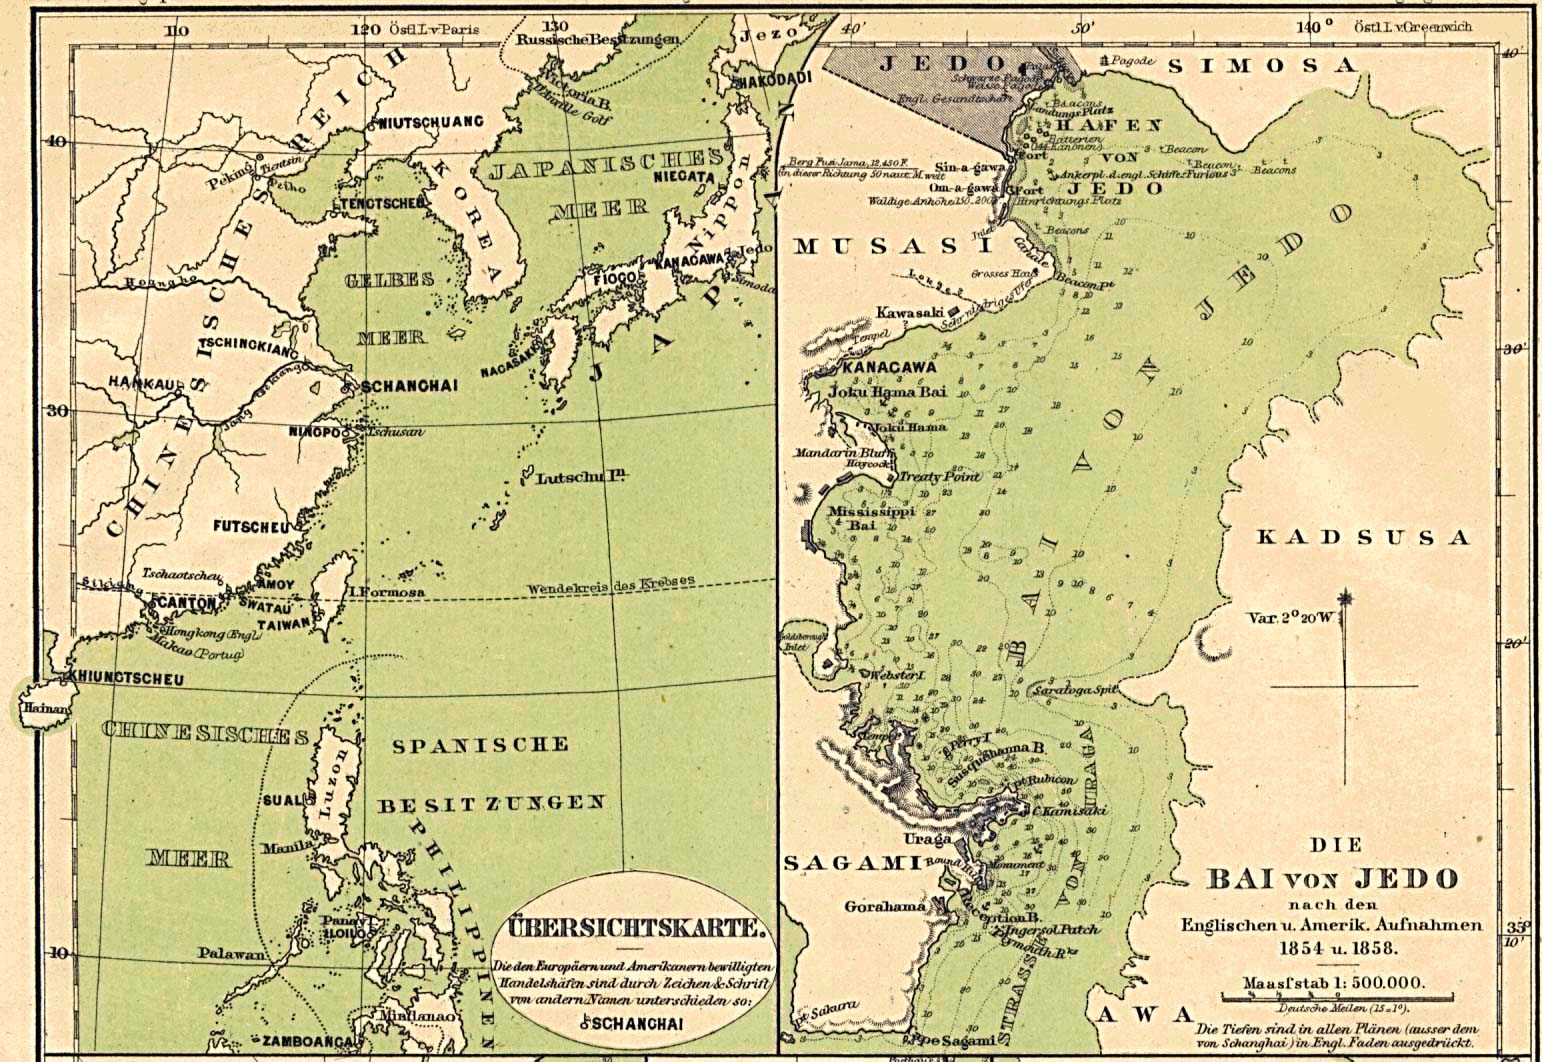 Maps of Japan and Edo Bay published in 1858